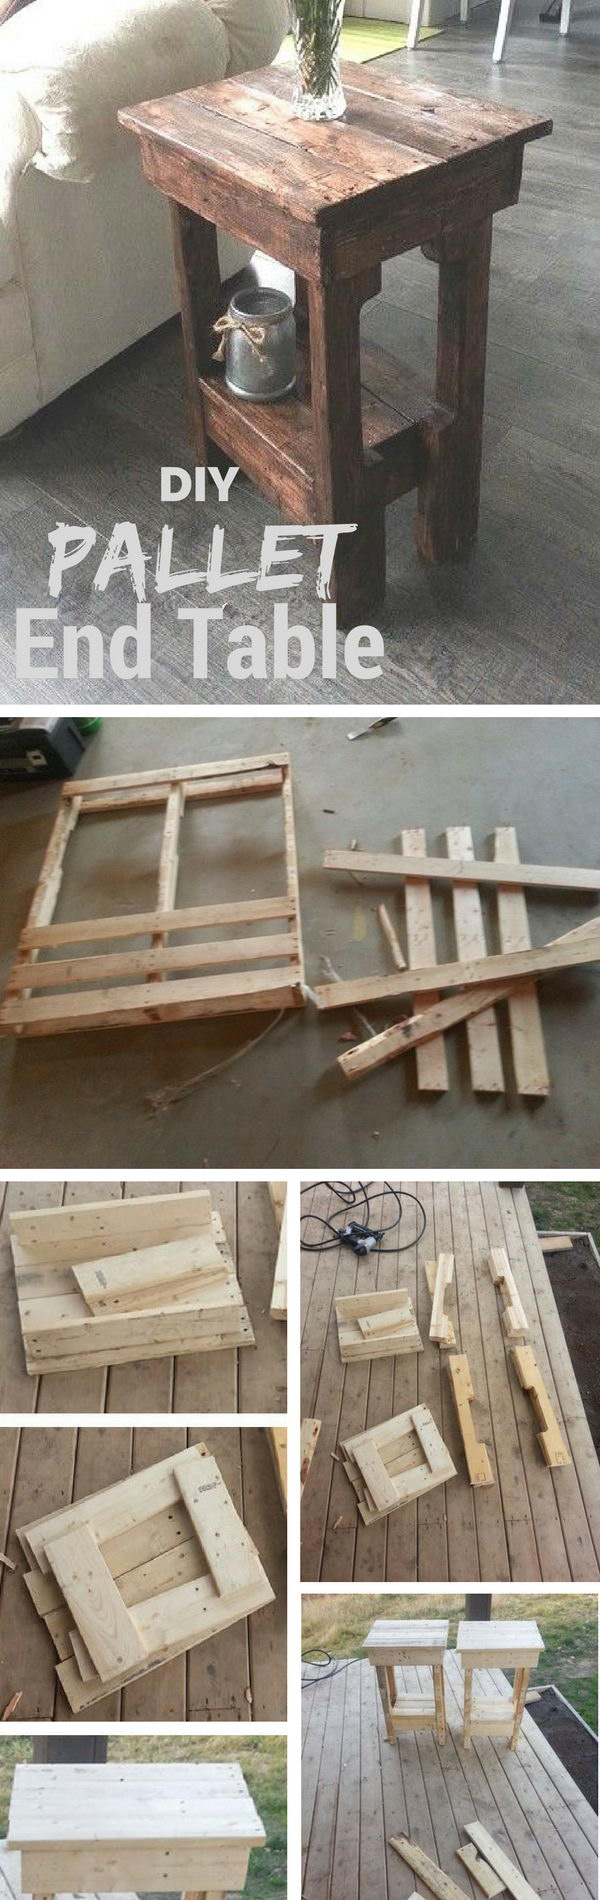 Easy Diy End Table Made From Pallet Wood